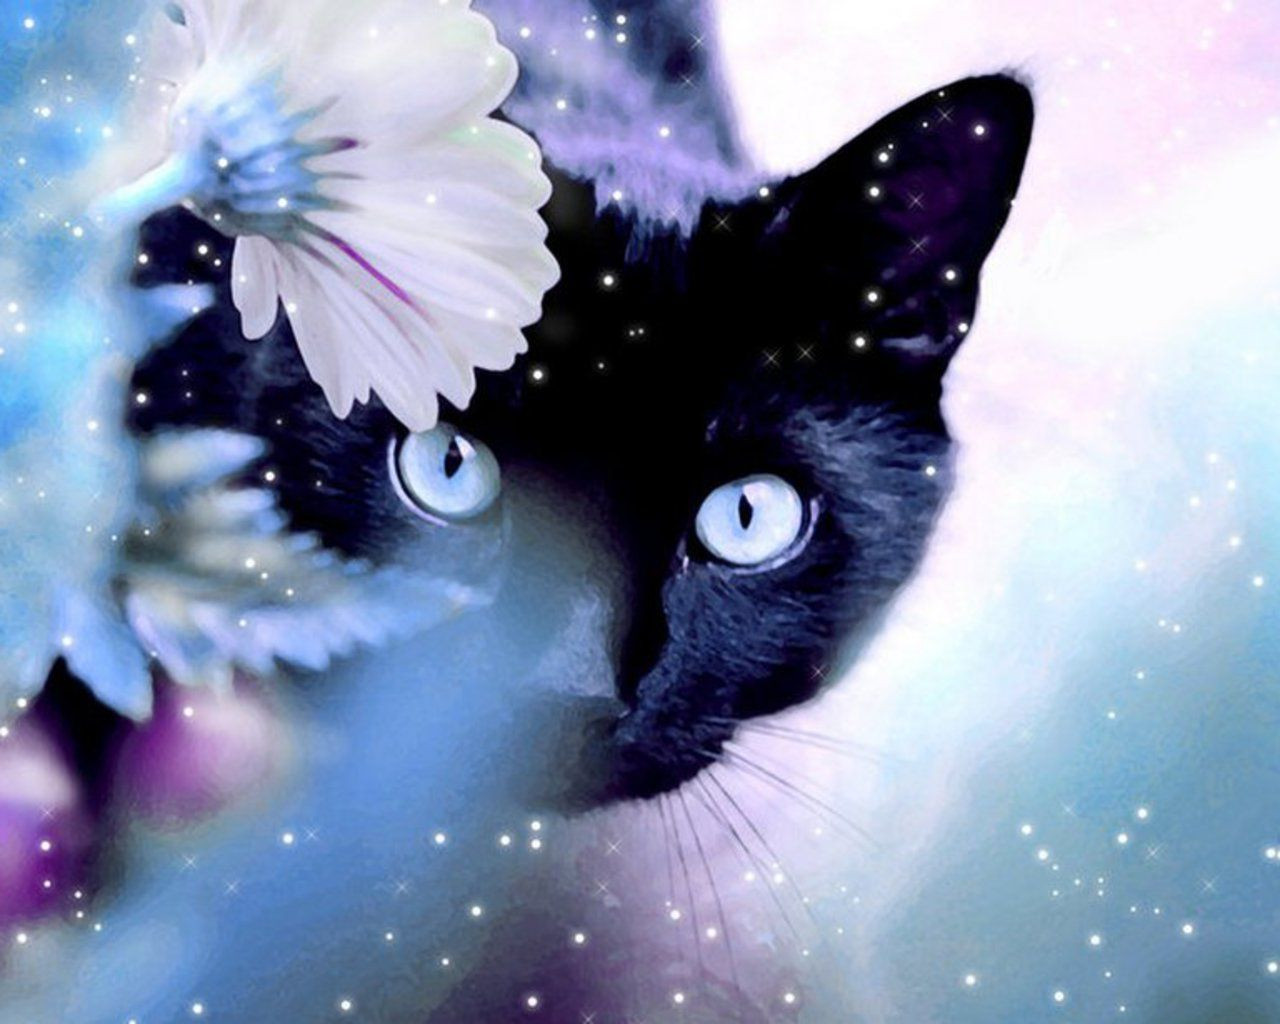 TRhToo 4k ultra cat wallpaper beautiful backgrounds with cats